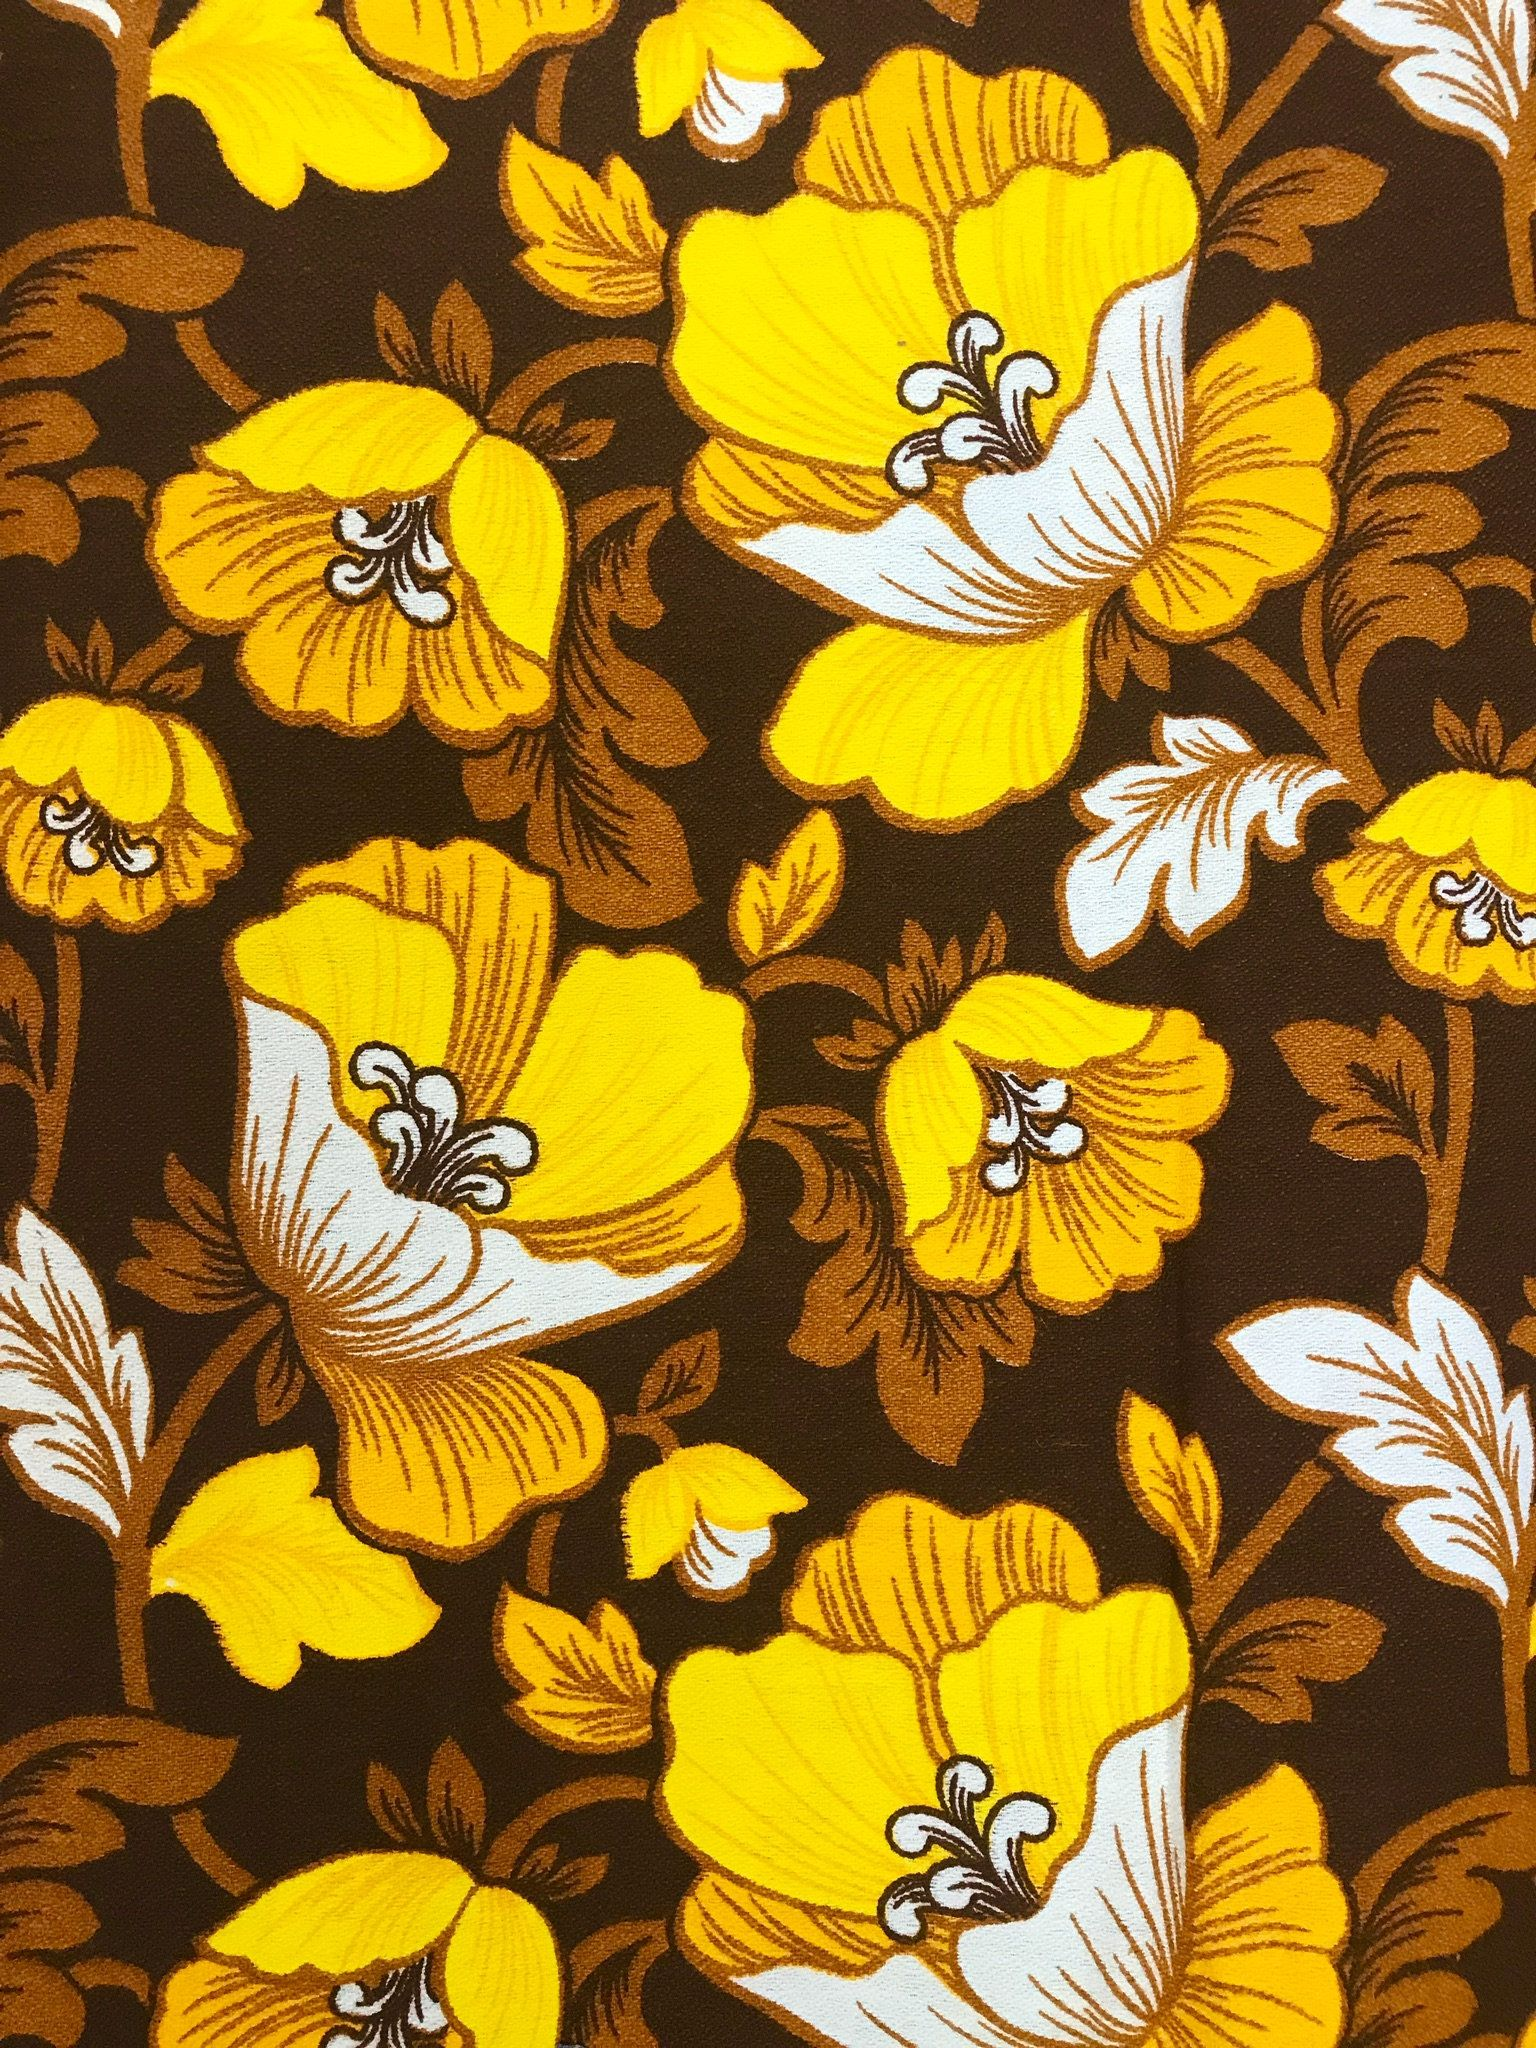 Vintage table runner with a brown and yellow design from Sweden